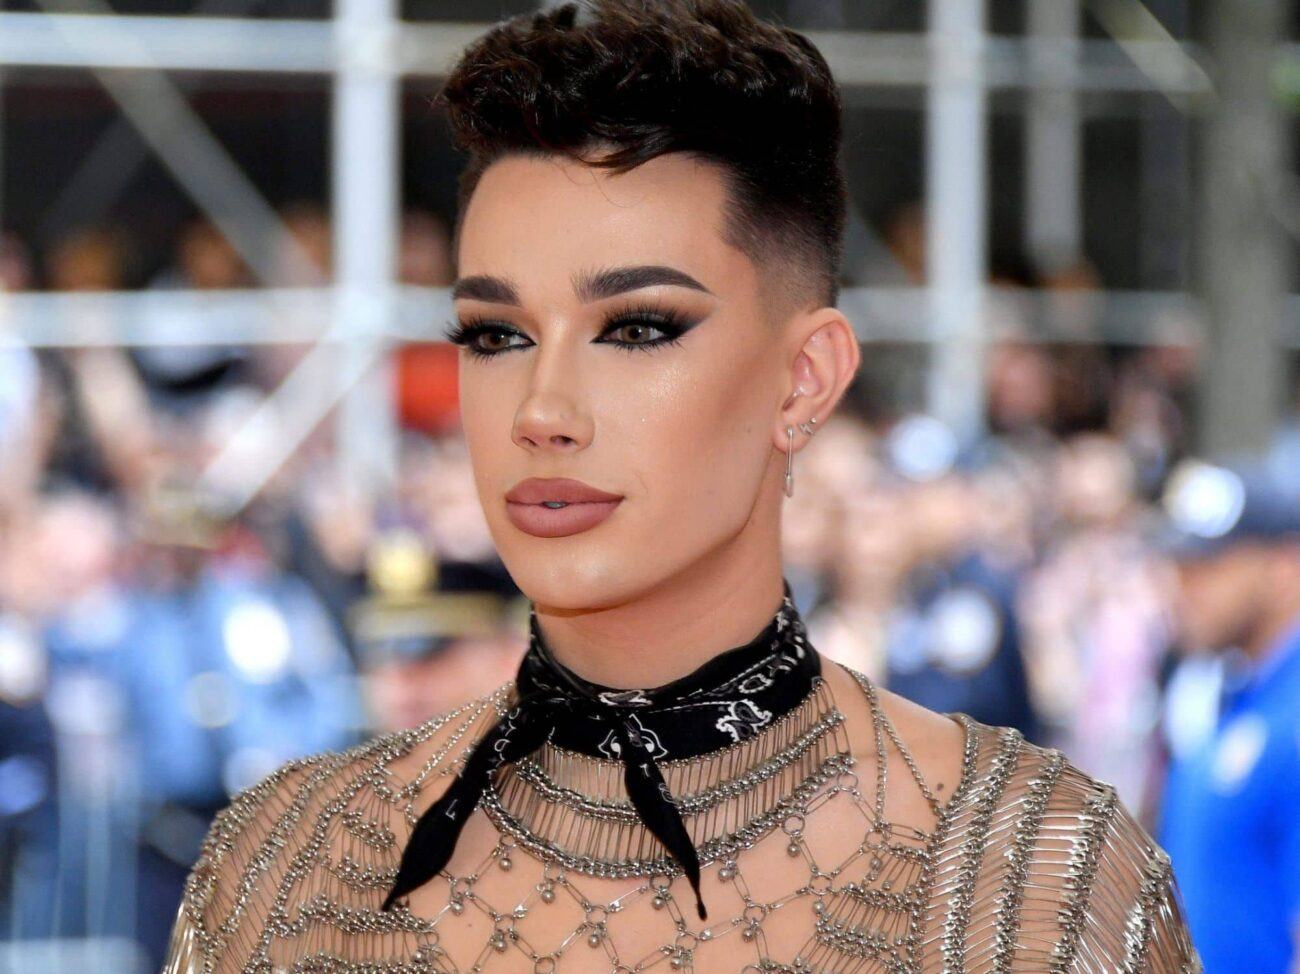 Sometimes, it doesn't matter what your net worth is: the right accusation will sink you. Find out how James Charles is dealing with grooming allegations!